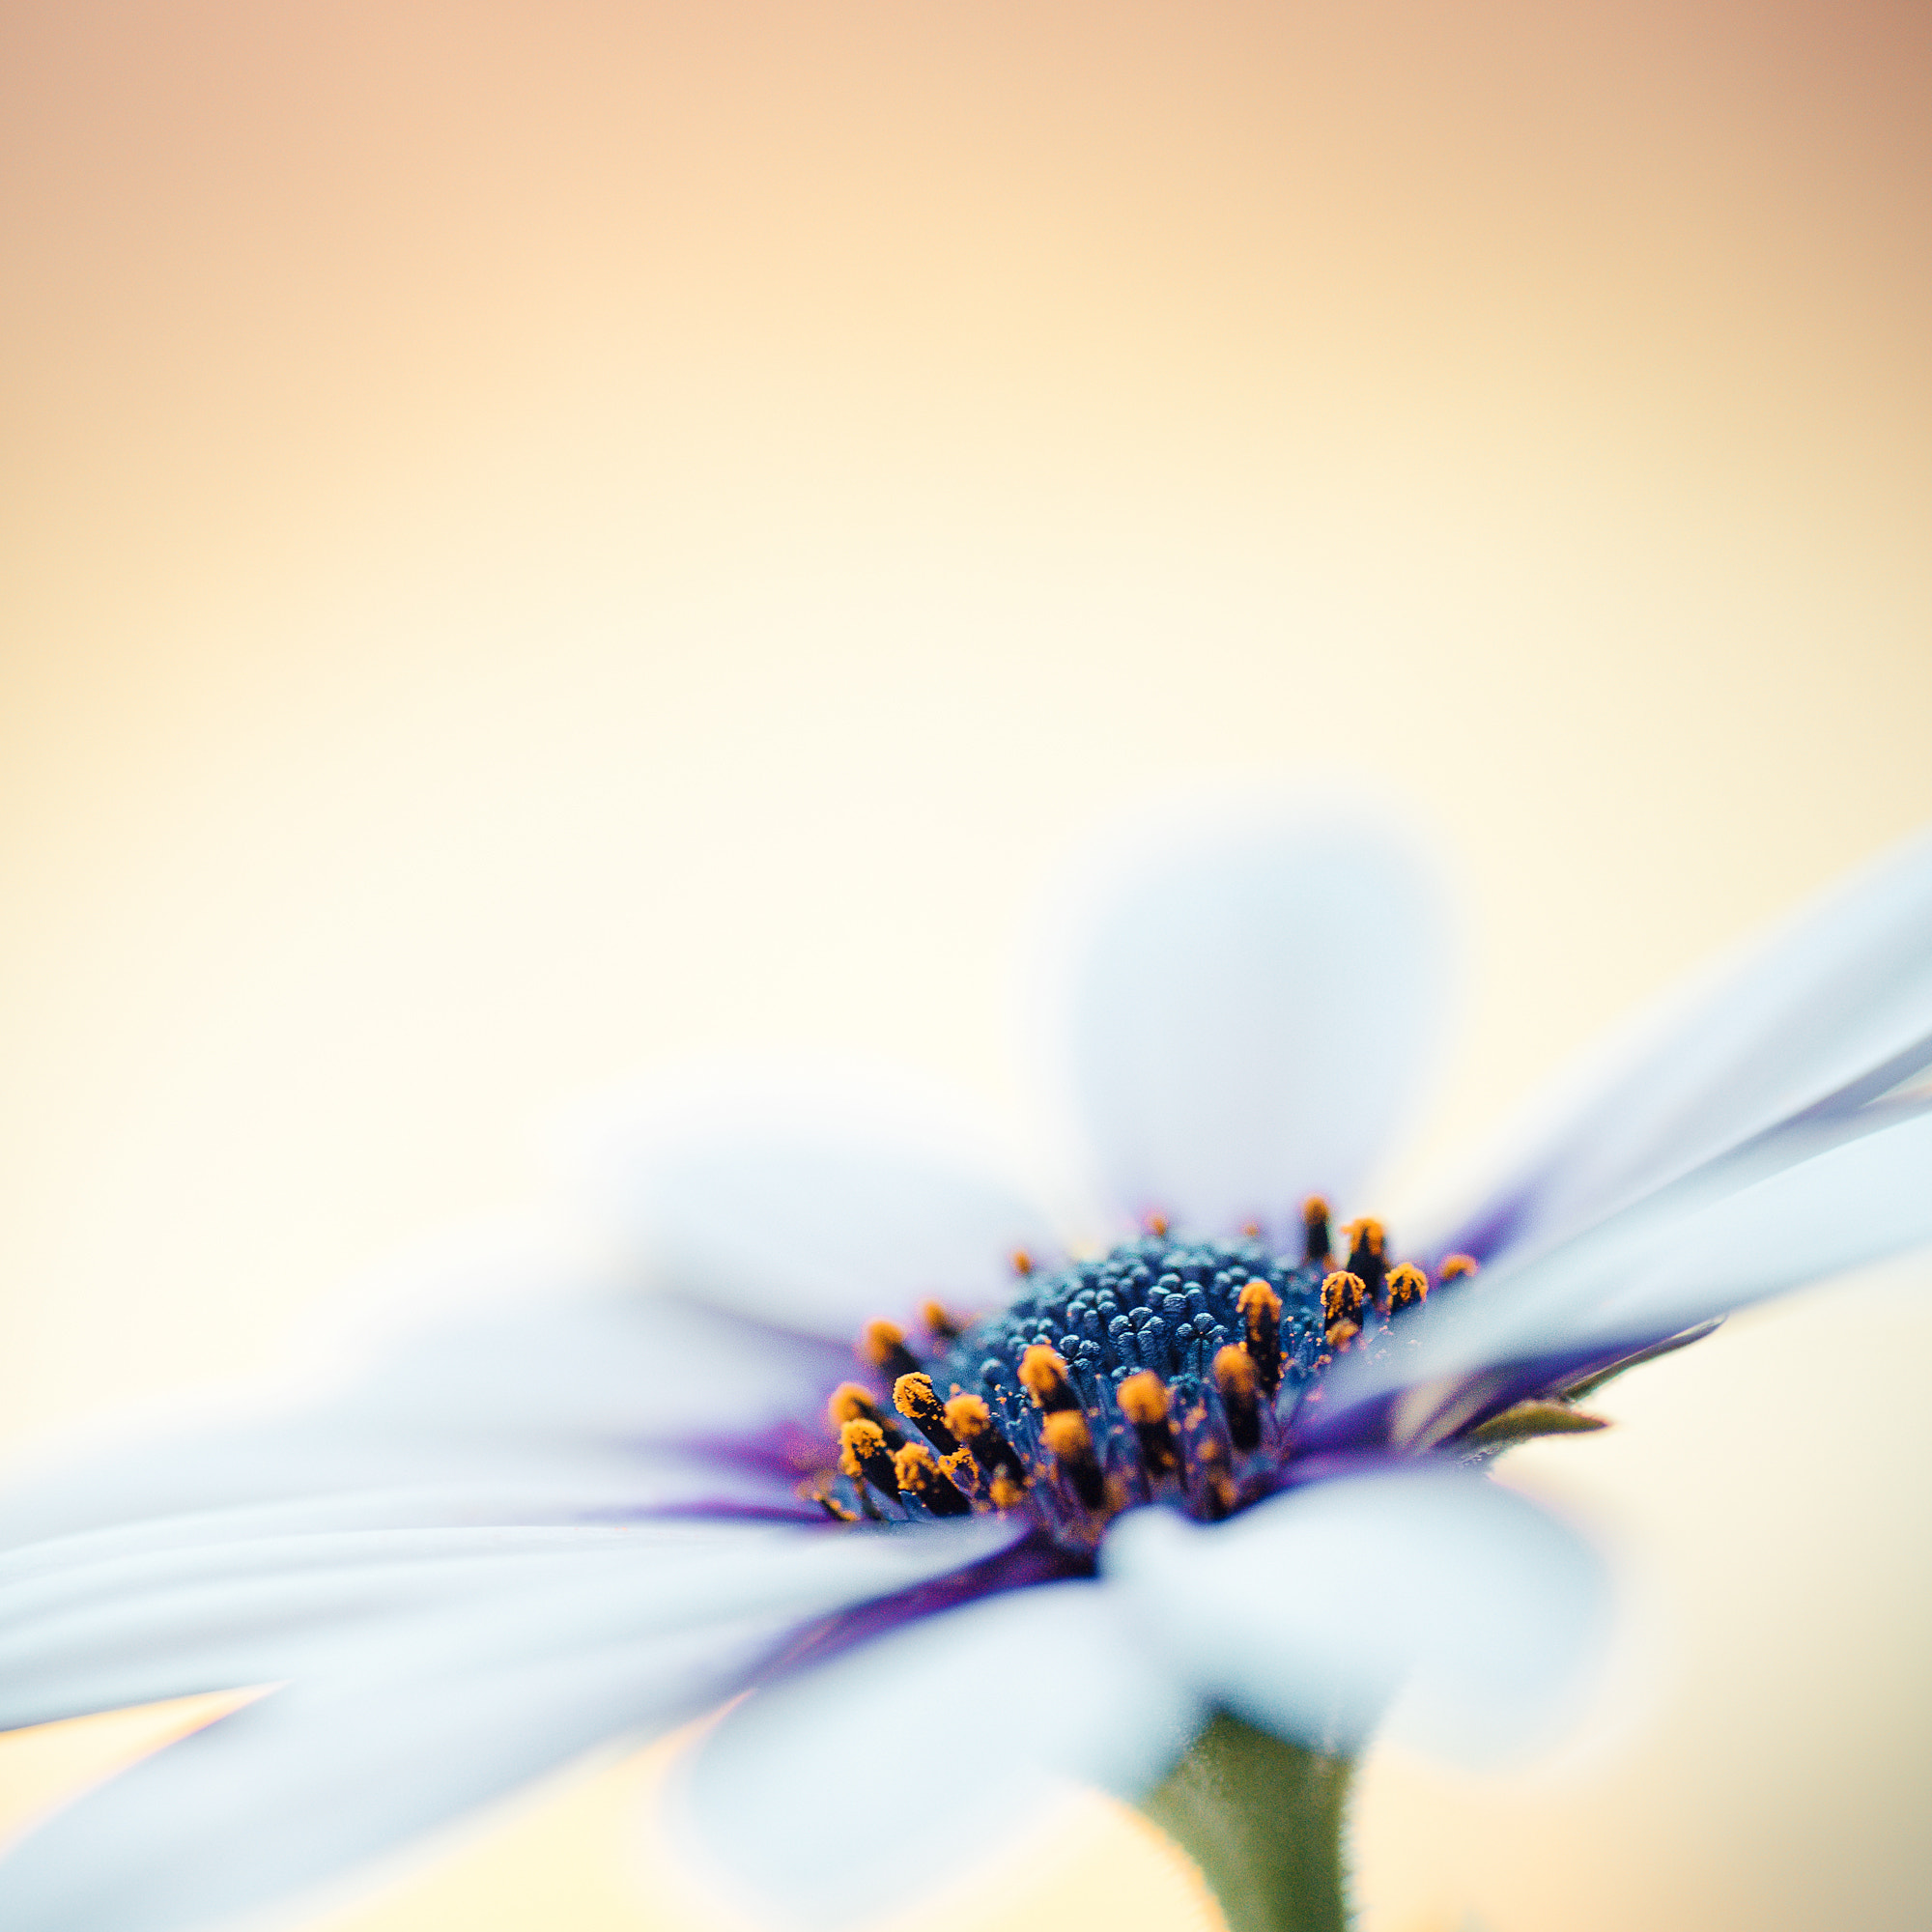 Photograph Bloem by Patrick Stroobach on 500px